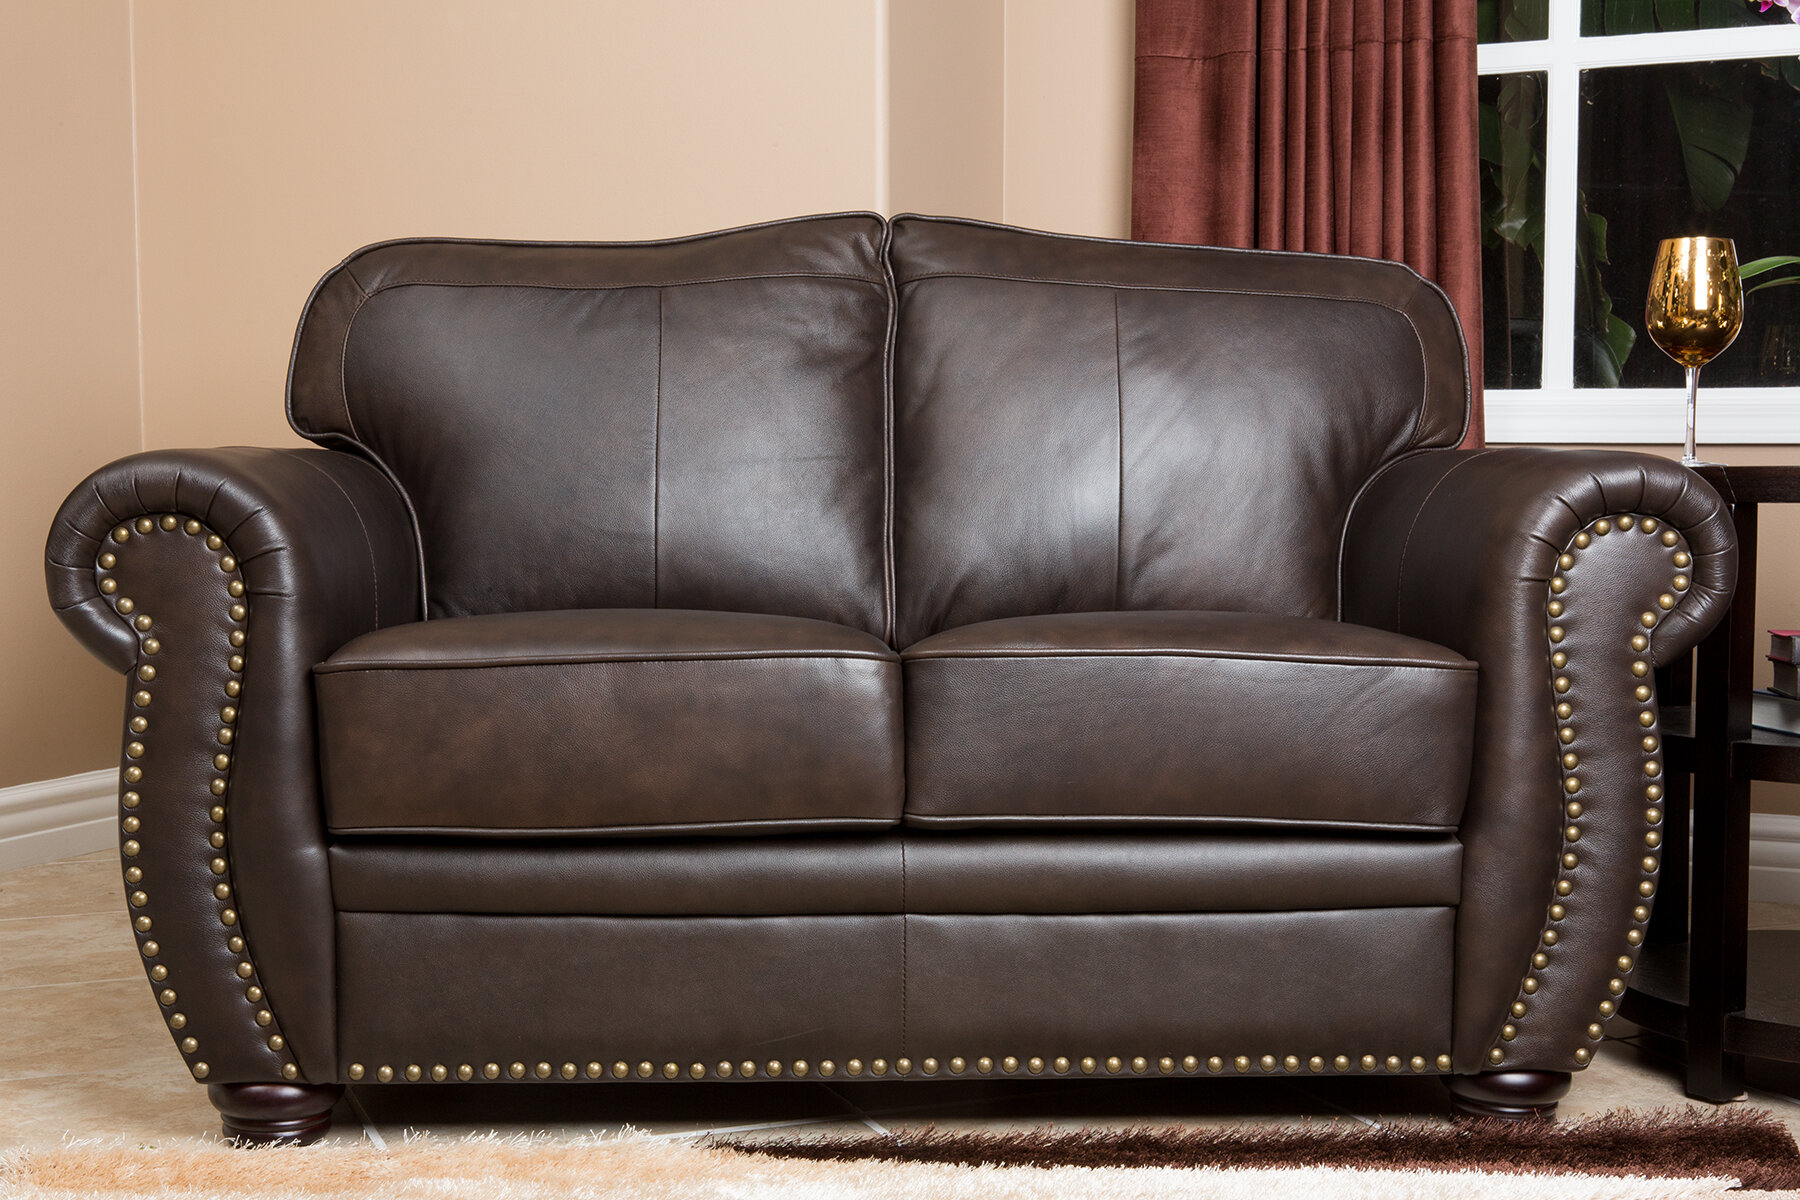 power loveseat oakwood recl classic leather recliner sable palliser reclining contemporary angled in grade